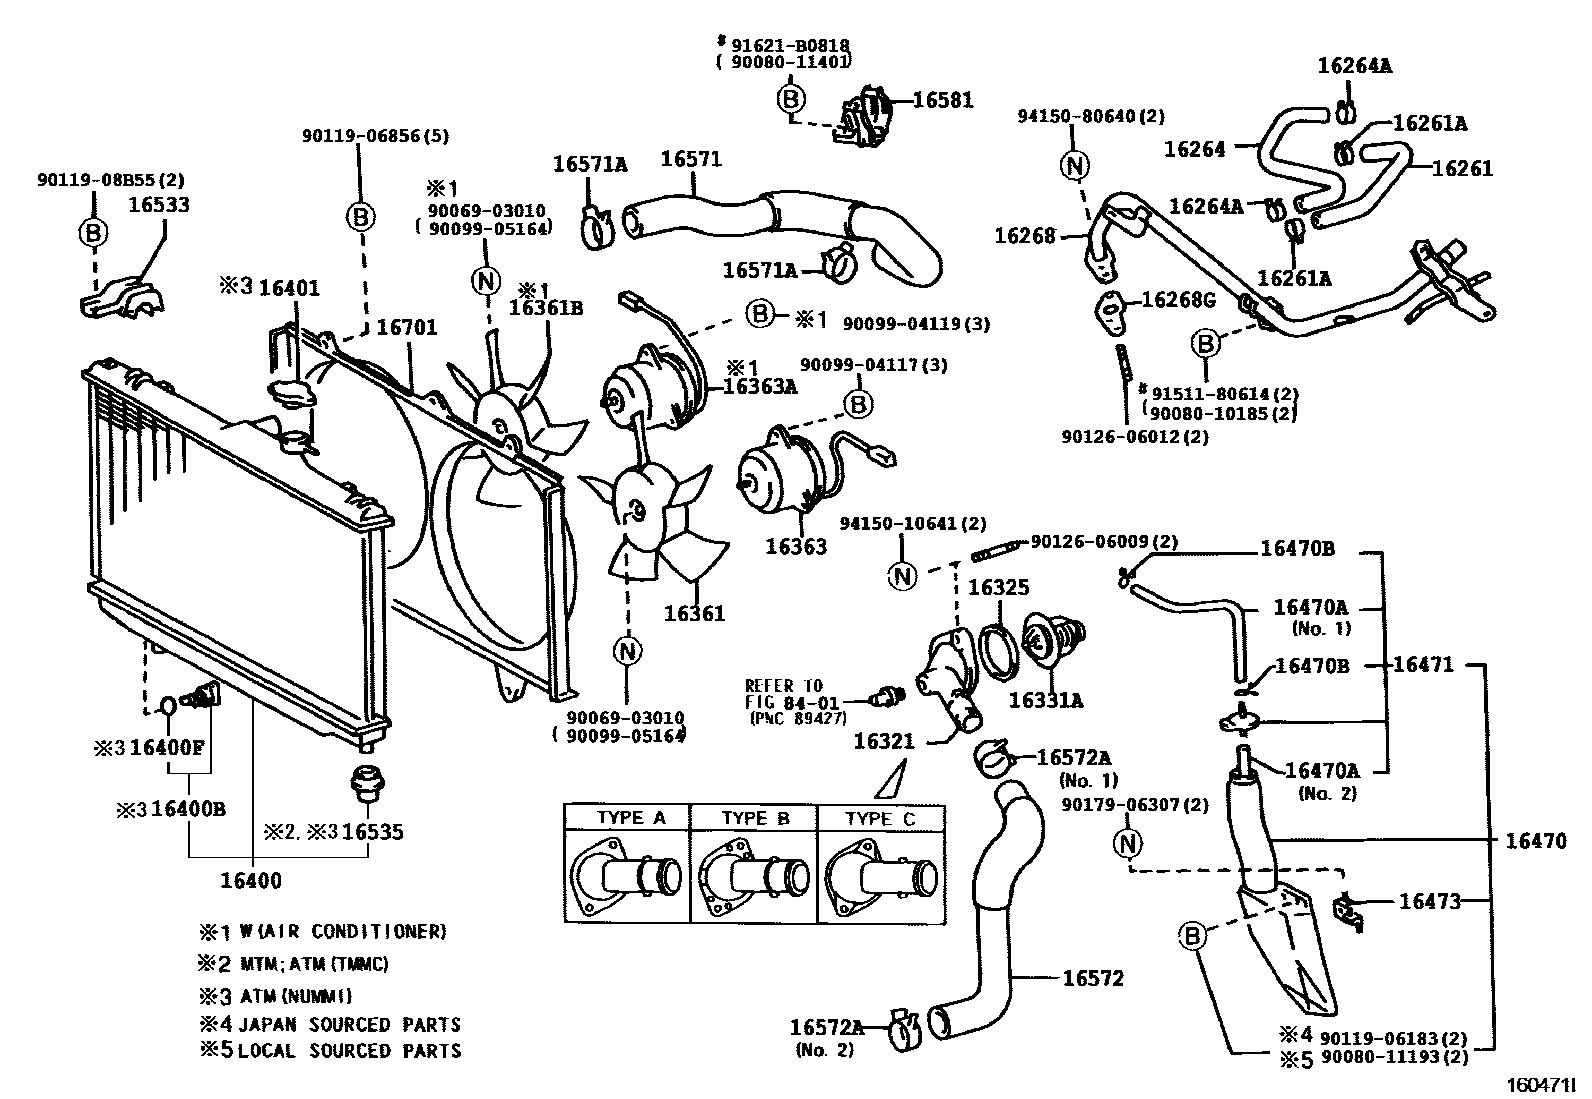 1998 Toyota Corolla Ve 1zzfe Zze110 on 2001 Toyota Sequoia Wiring Diagram